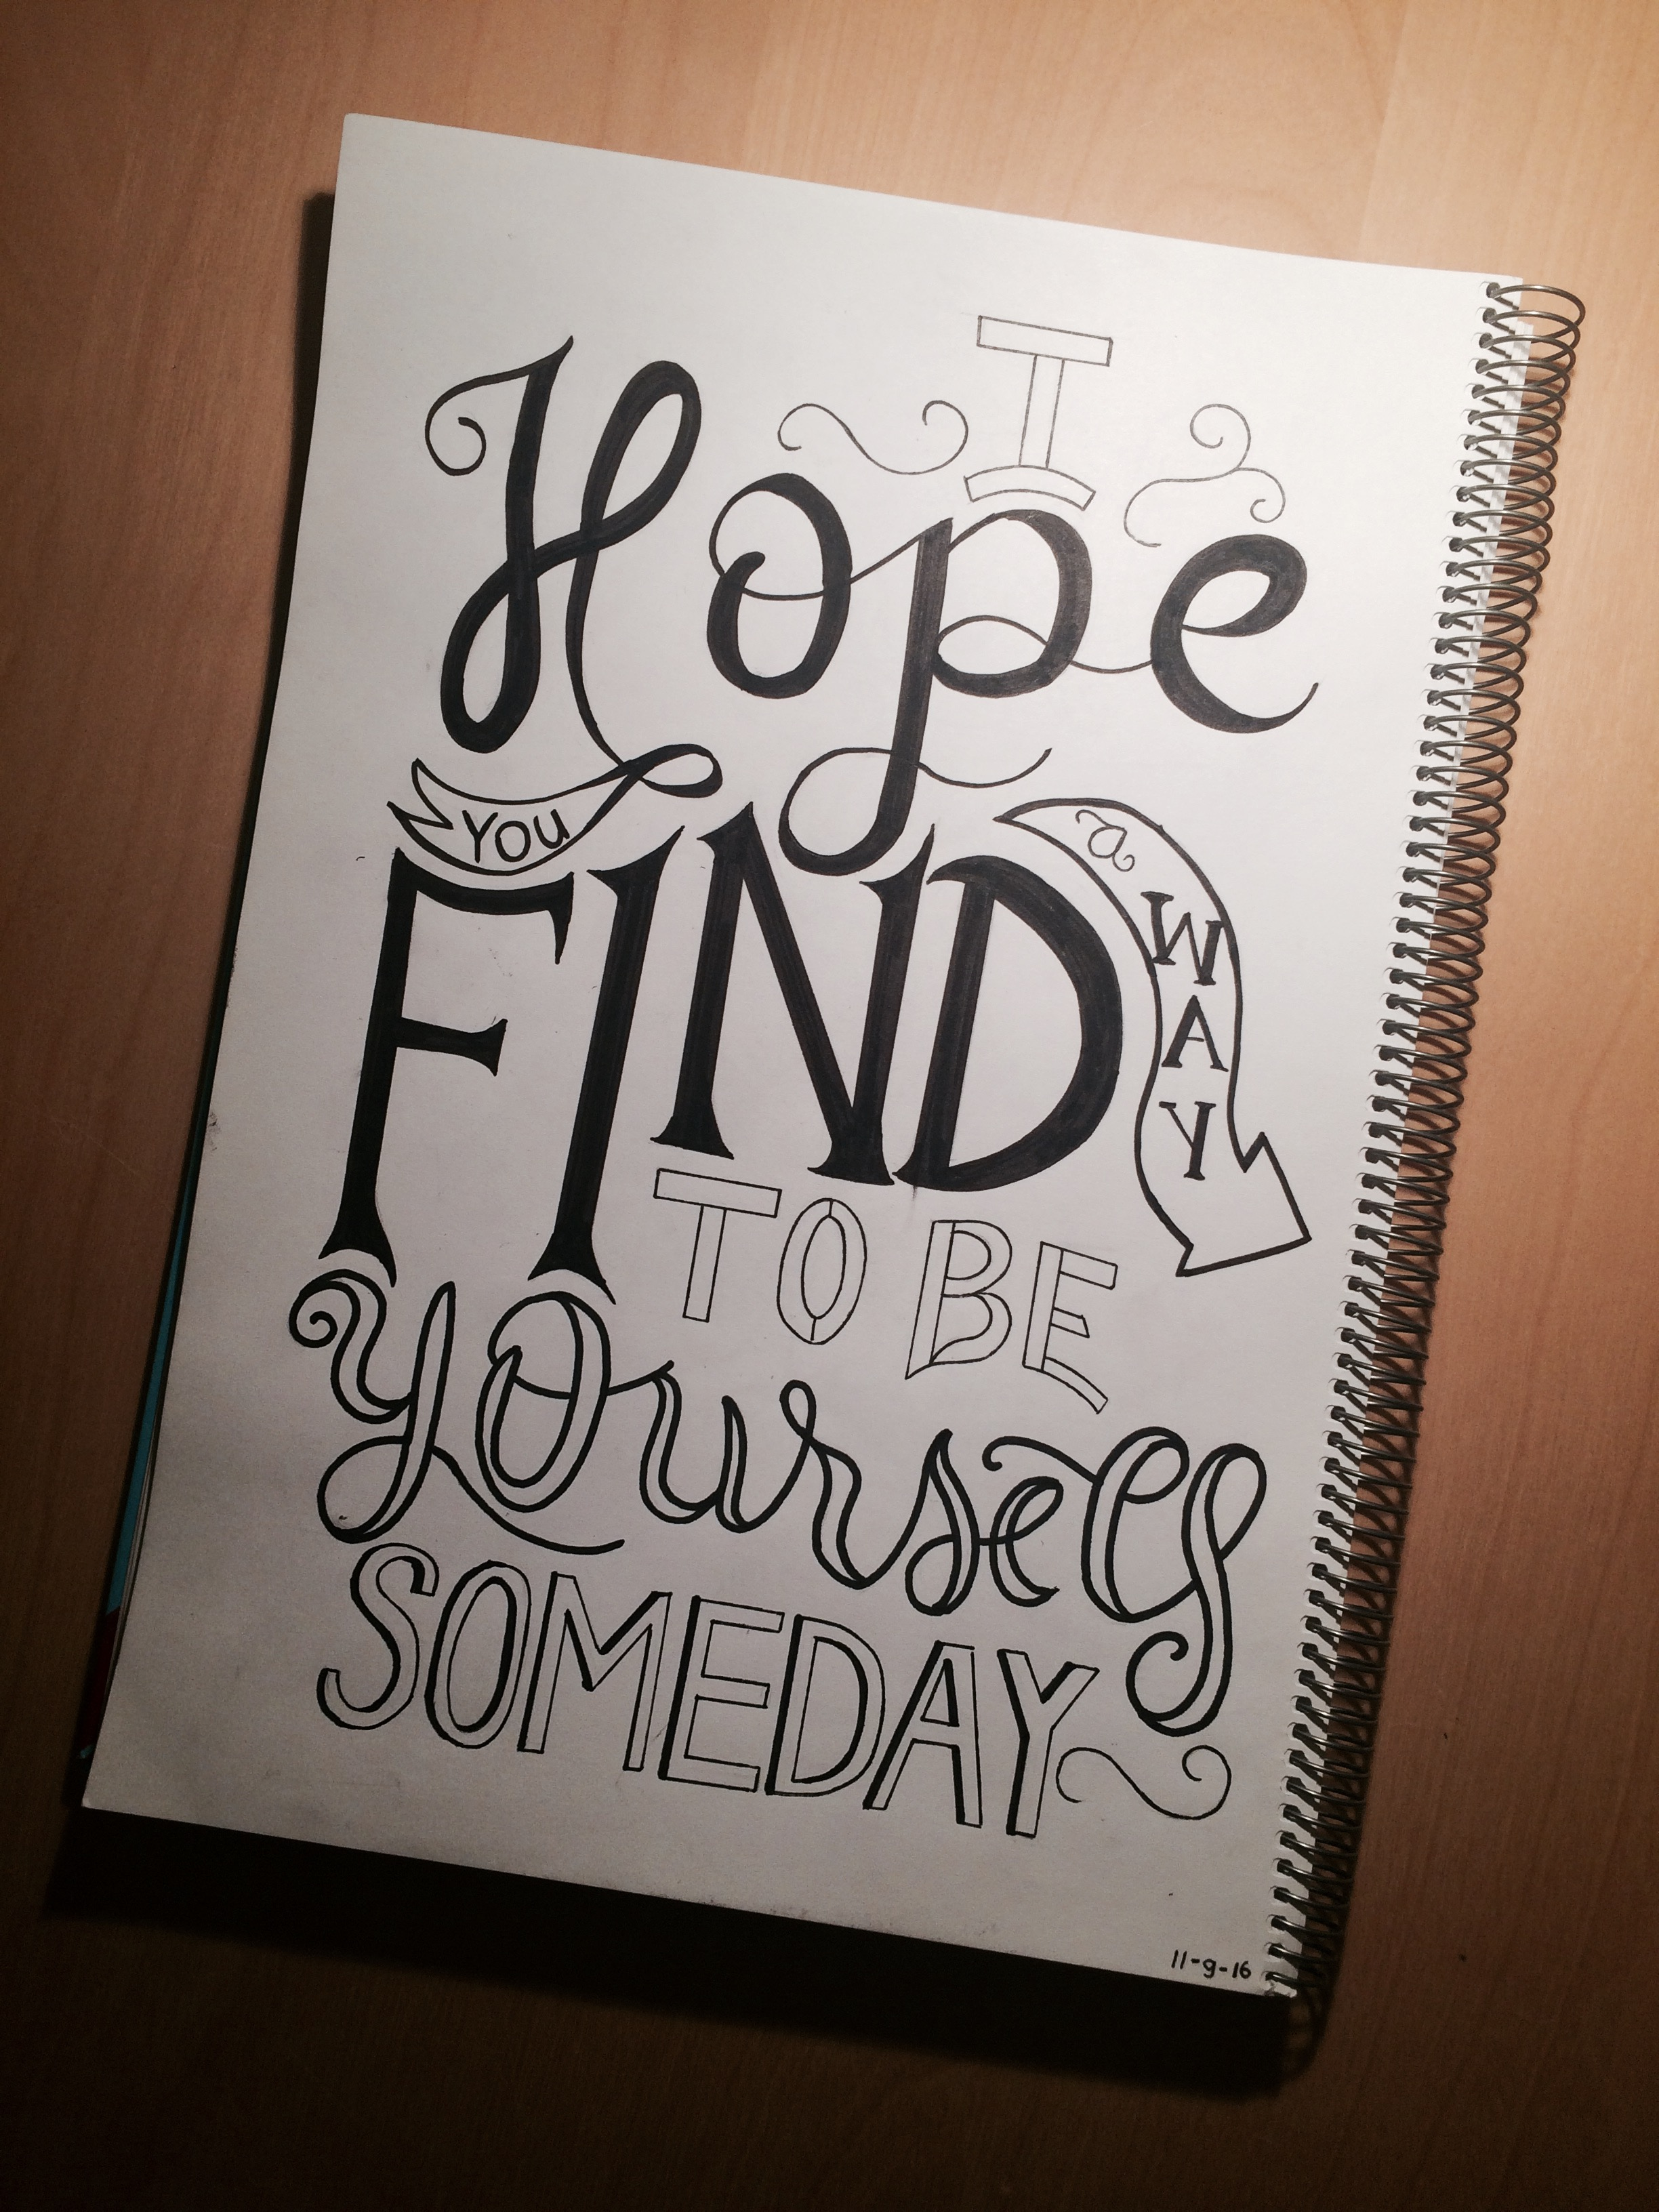 2448x3264 I Hope You Find A Way To Be Yourself Someday! @drawmotivation